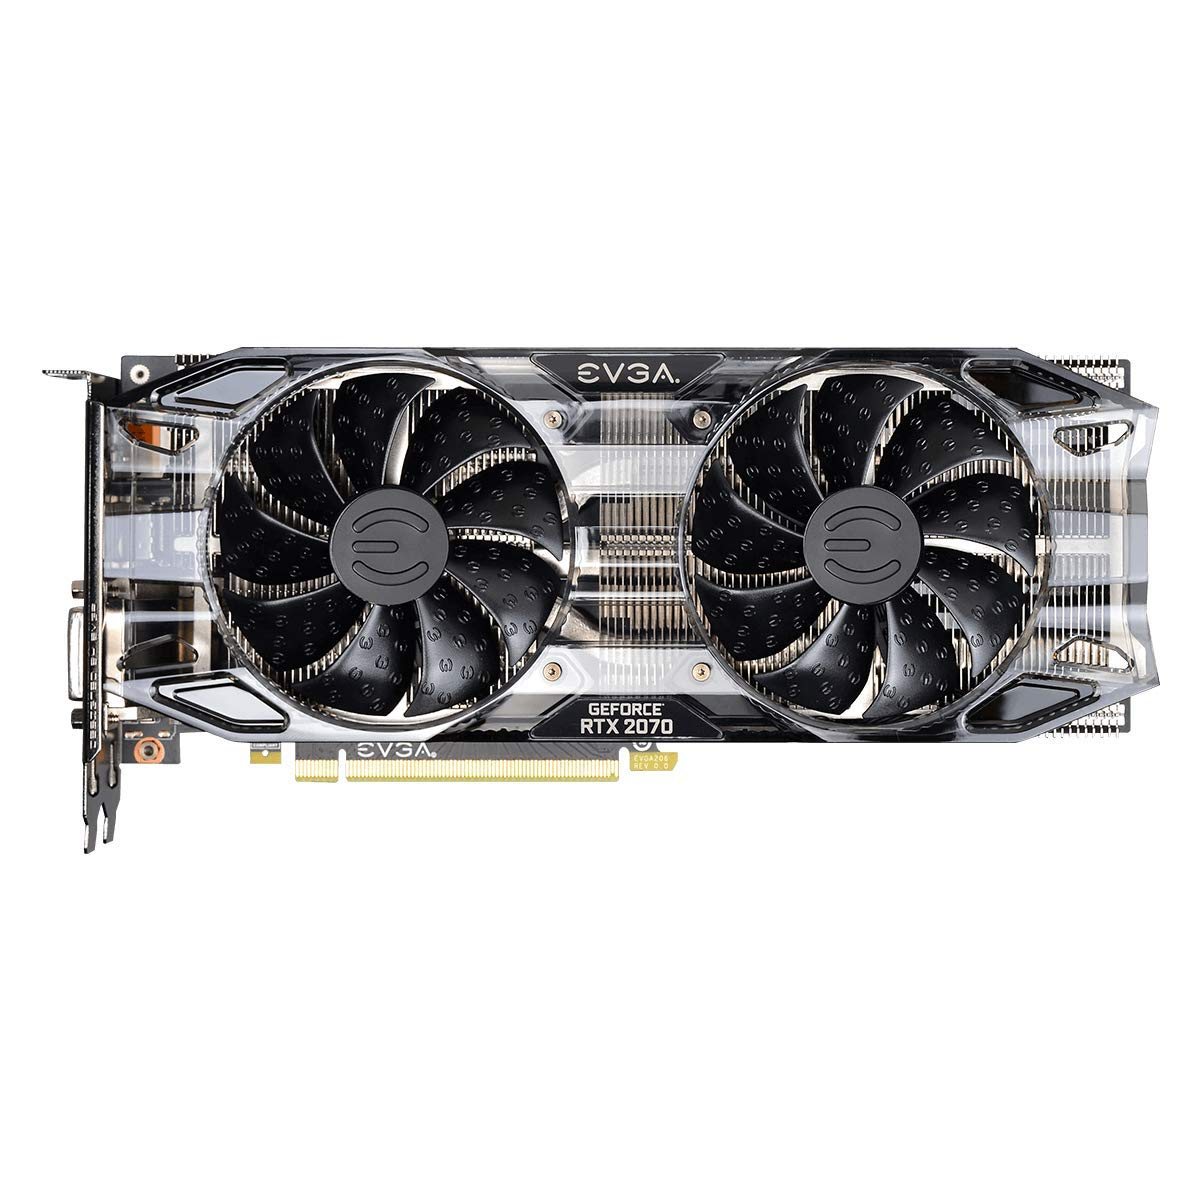 EVGA GeForce RTX 2070 Black Gaming,8GB GDDR6, Dual HDB Fans Graphics Card 08G-P4-1071-KR by EVGA (Image #3)